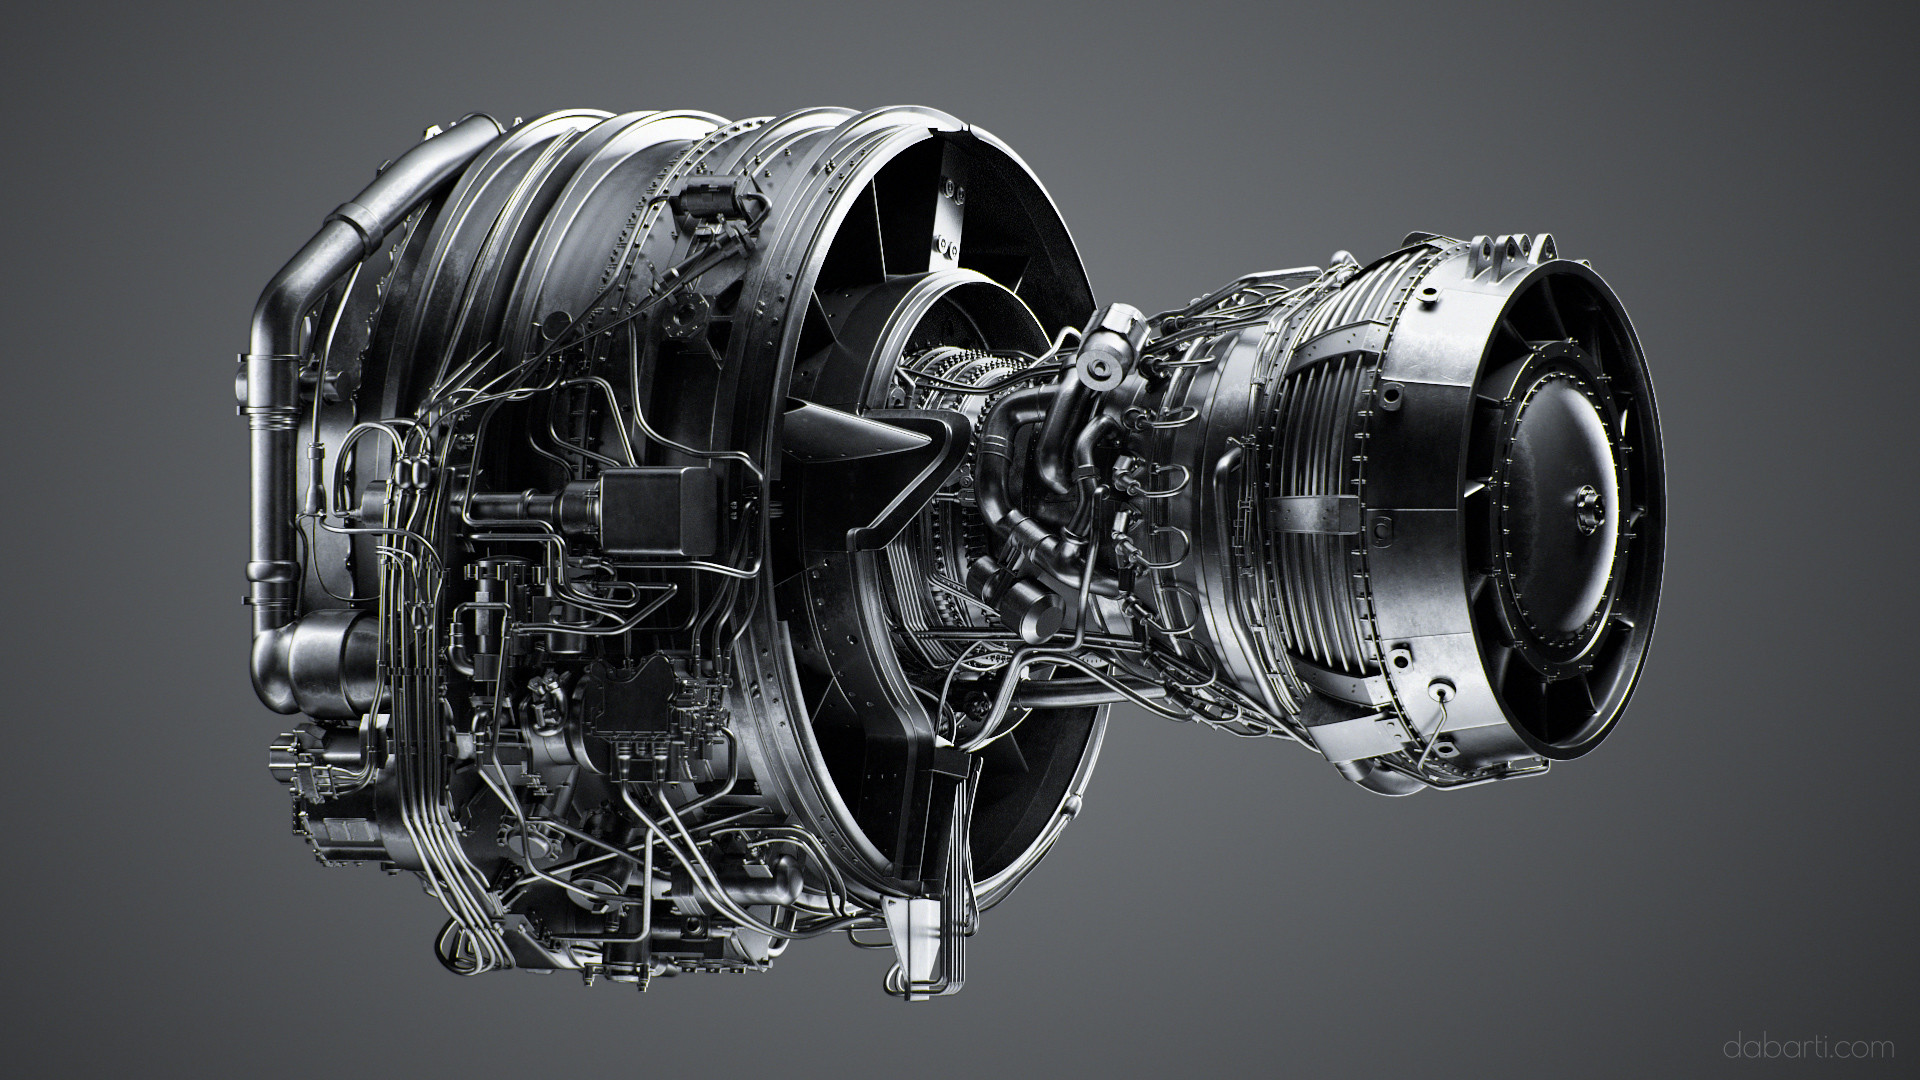 00023_jet_engine_cfm56_00001